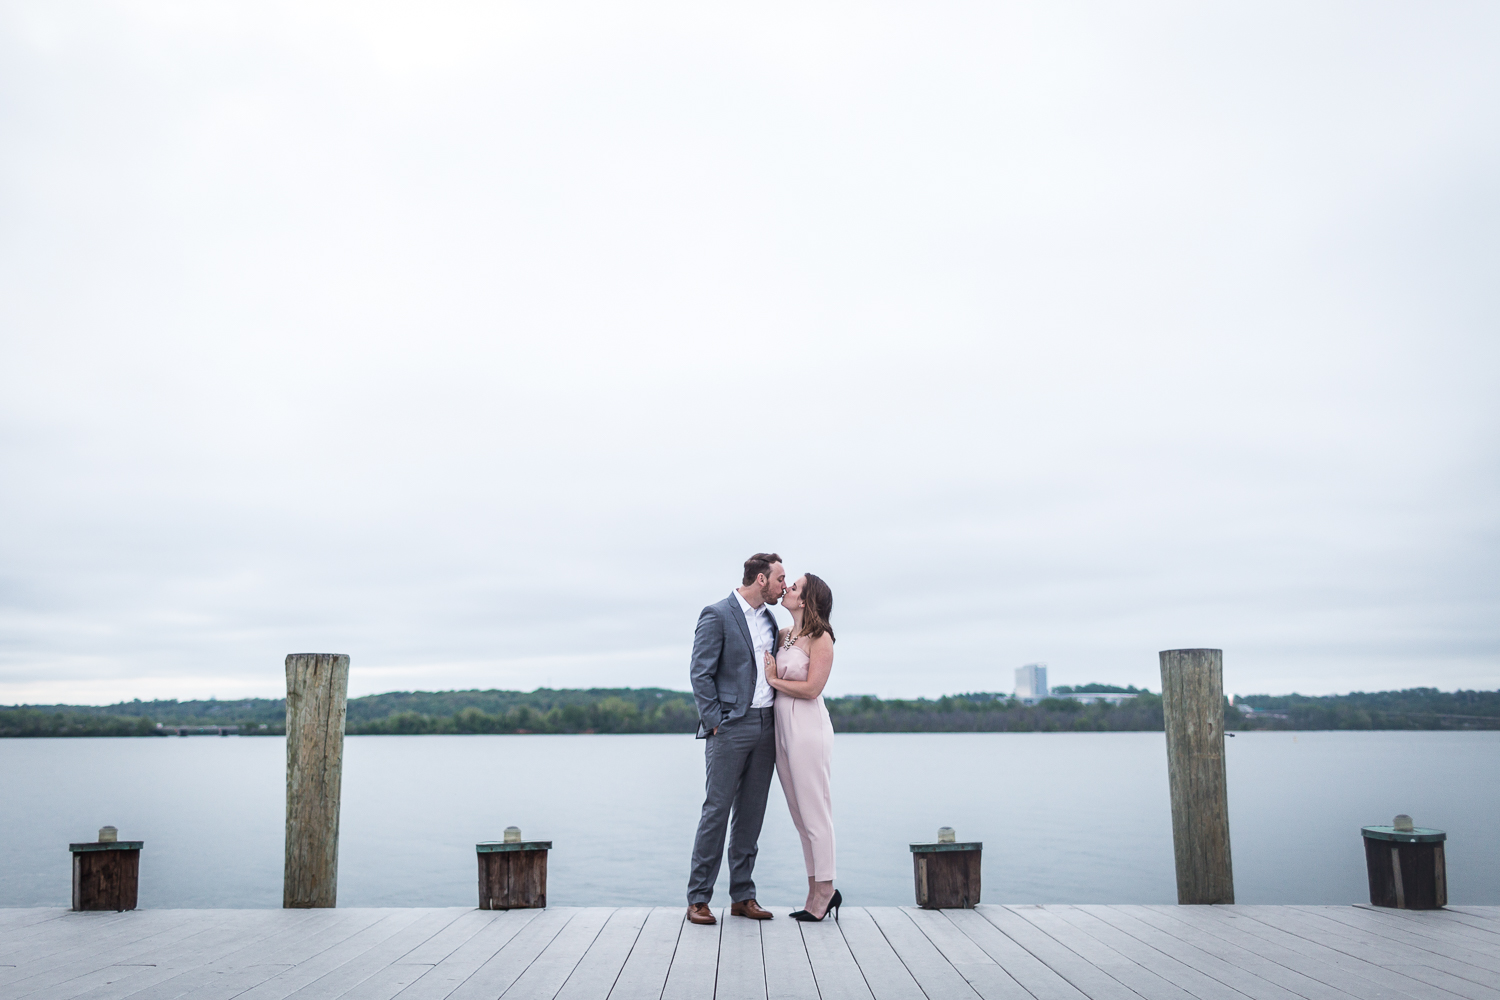 Washington DC Wedding Photography - Brett Ludeke